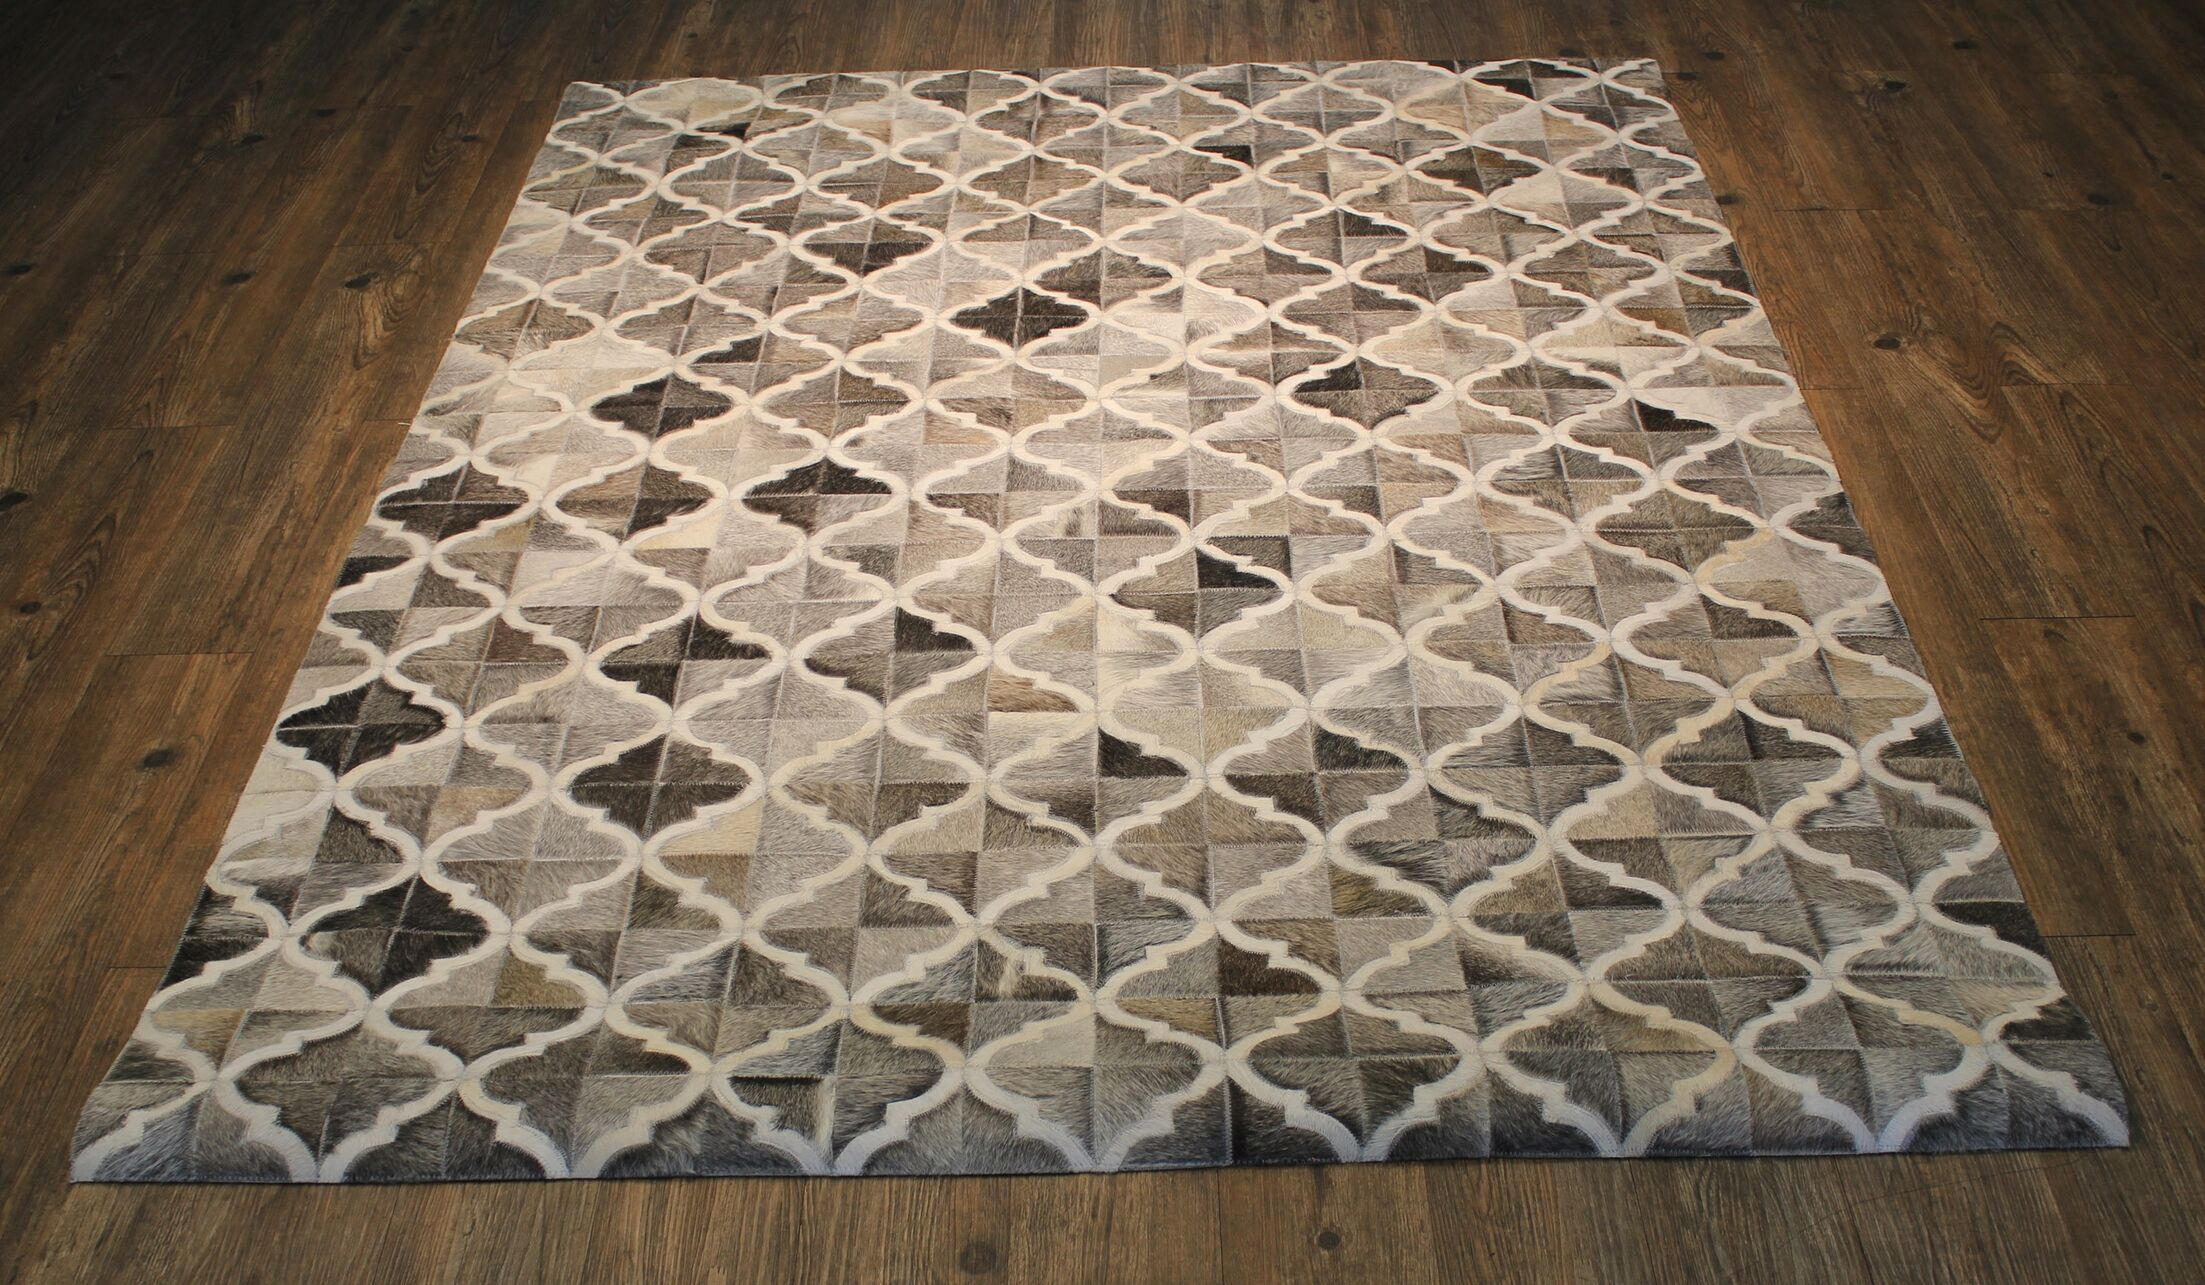 Knopf Hand-Woven Cowhide Brown/Beige Area Rug